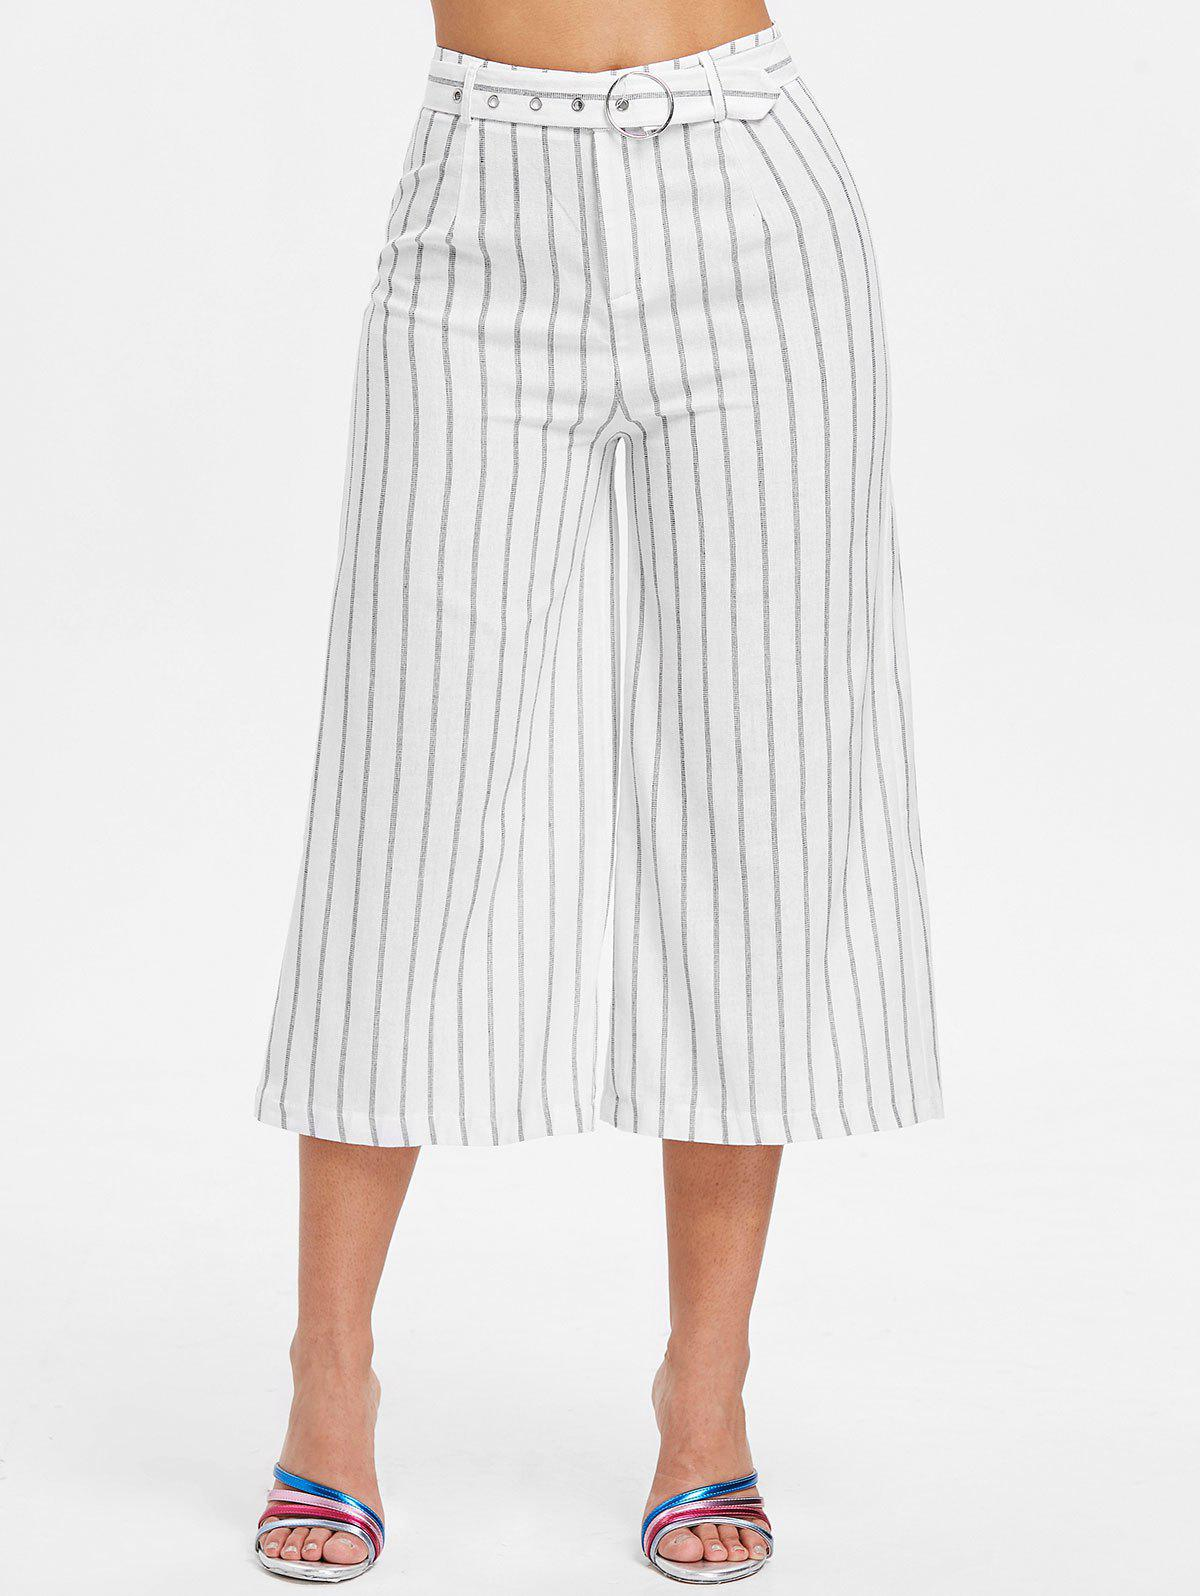 Hot High Waist Striped Capri Pants